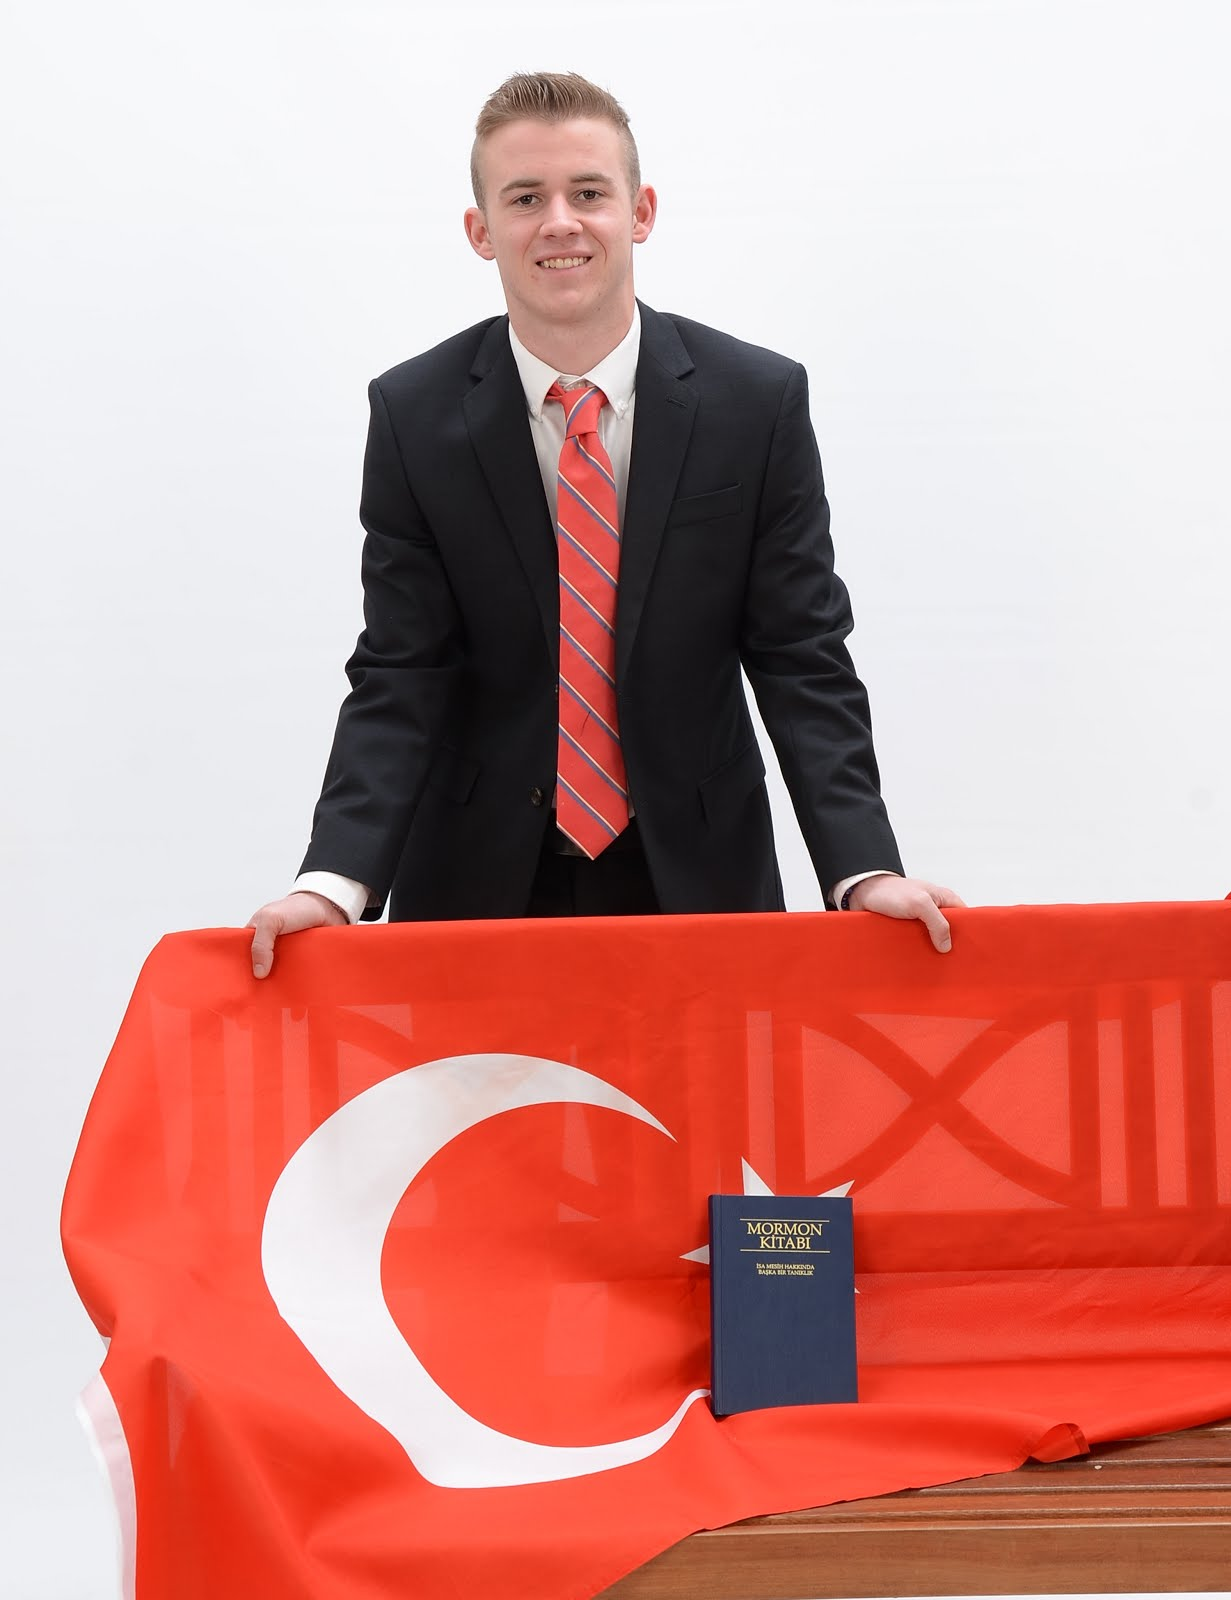 Elder(Volunteer) Cameron A Muncy